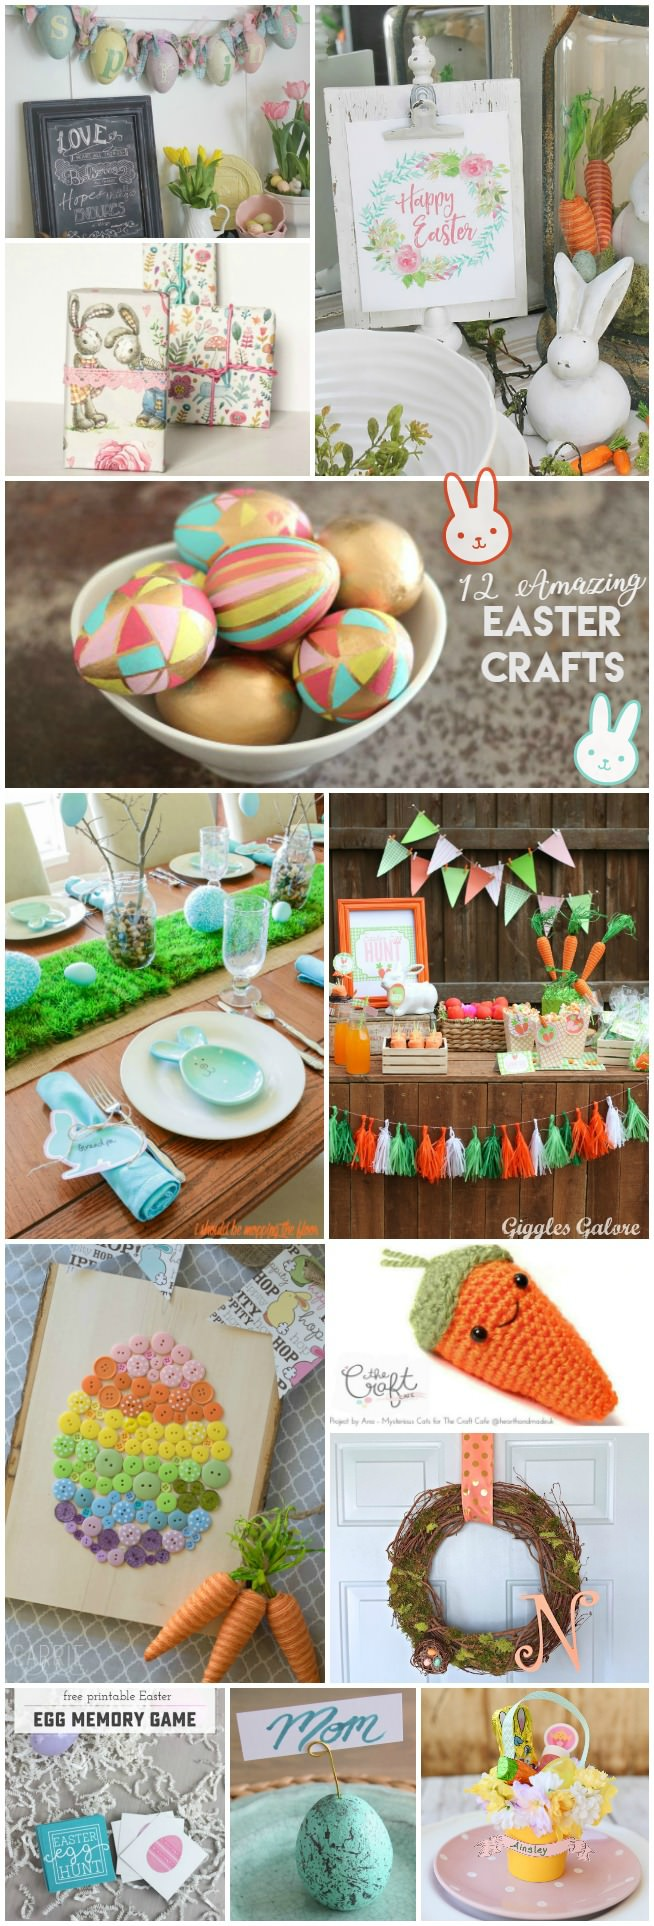 12 amazing Easter crafts for you and your family to make this Spring!